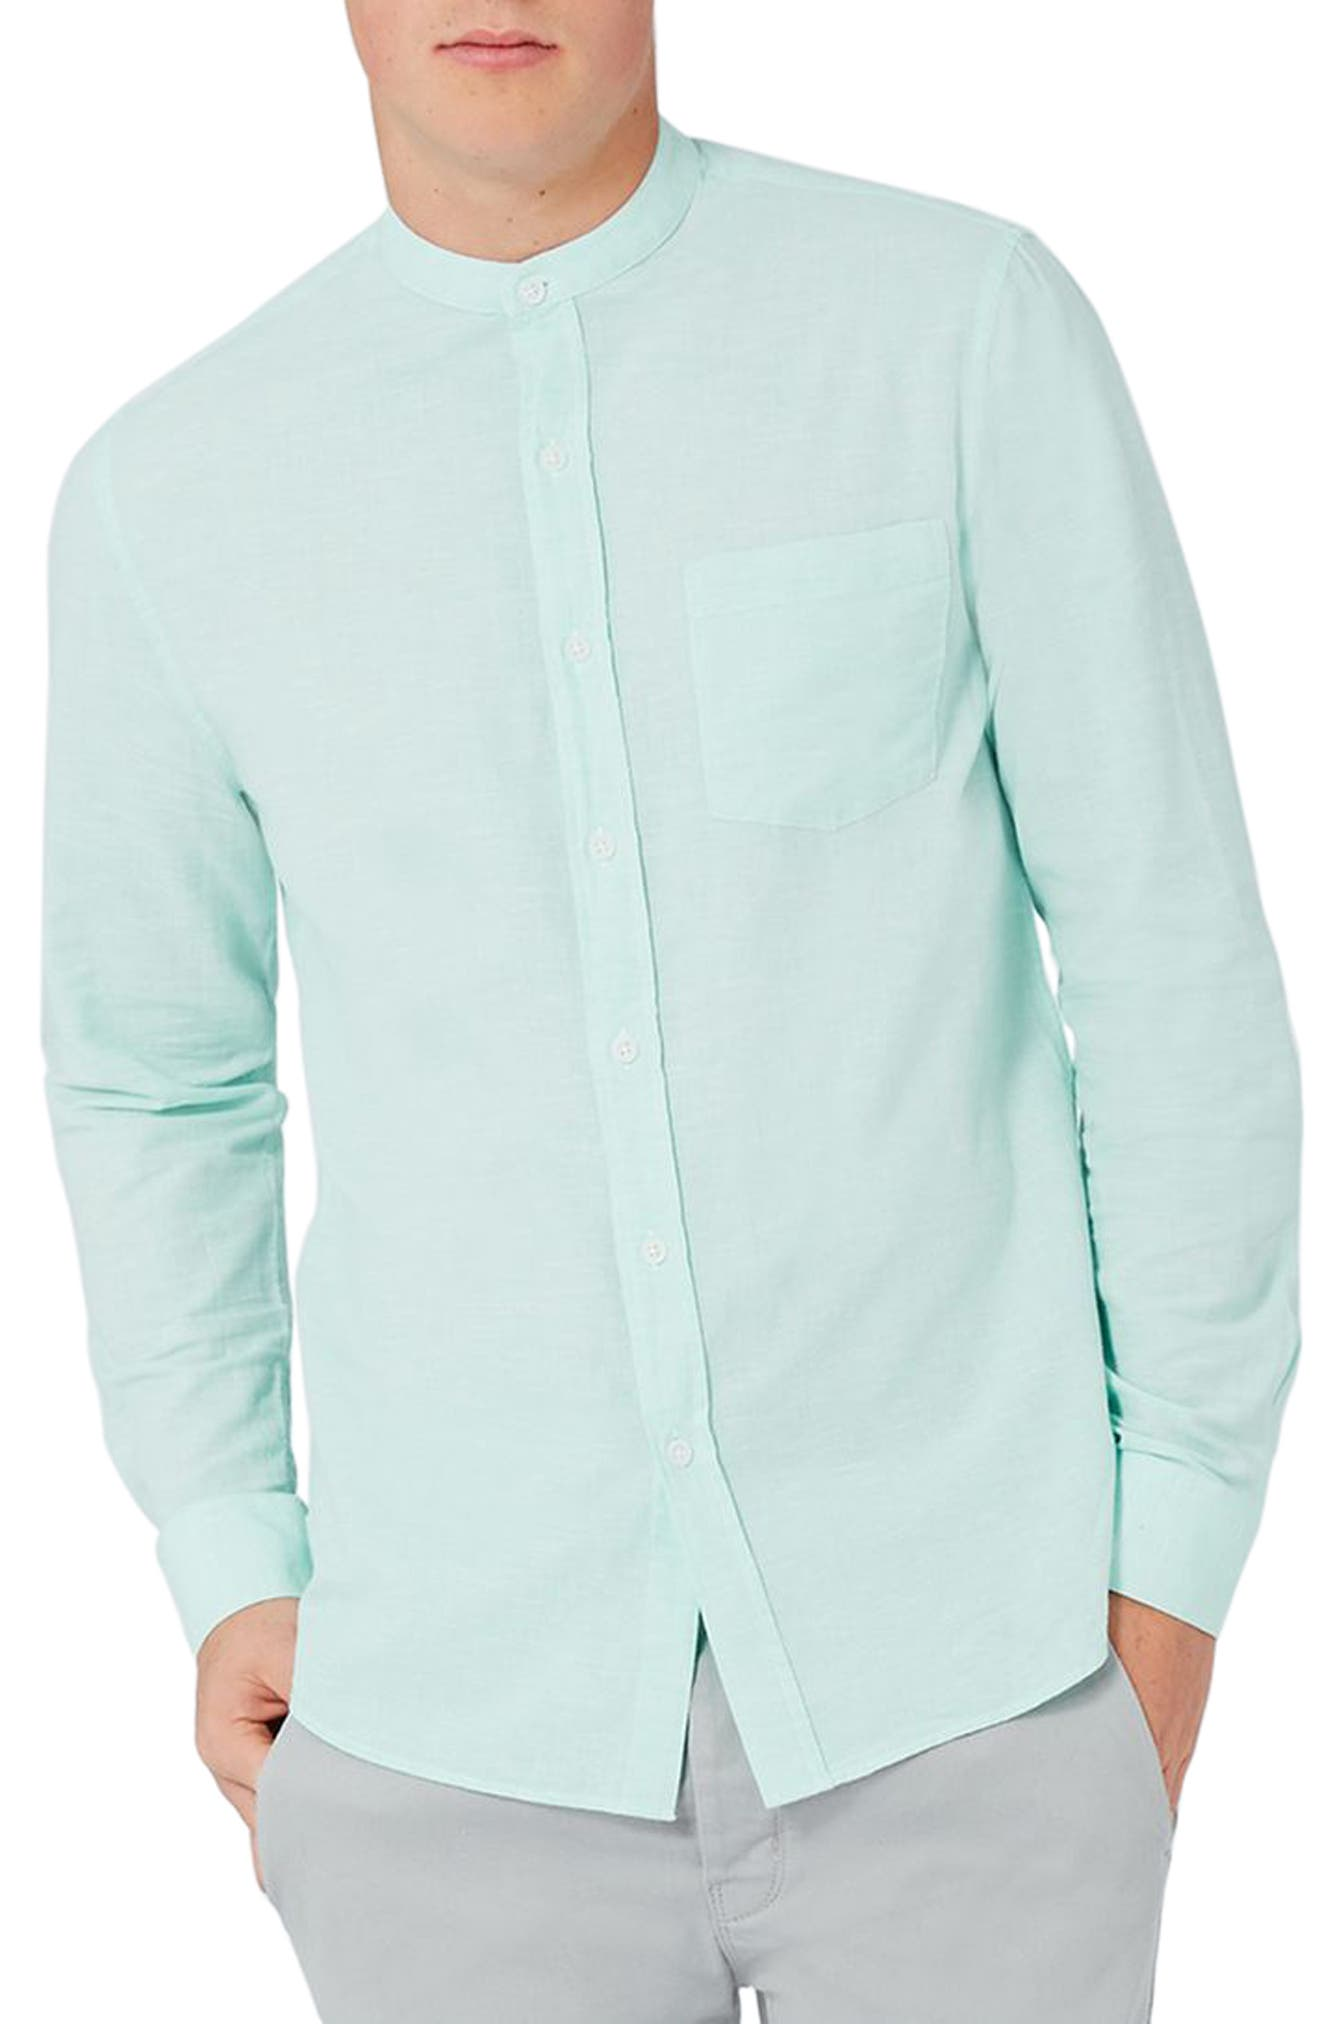 Topman Band Collar Slub Woven Shirt